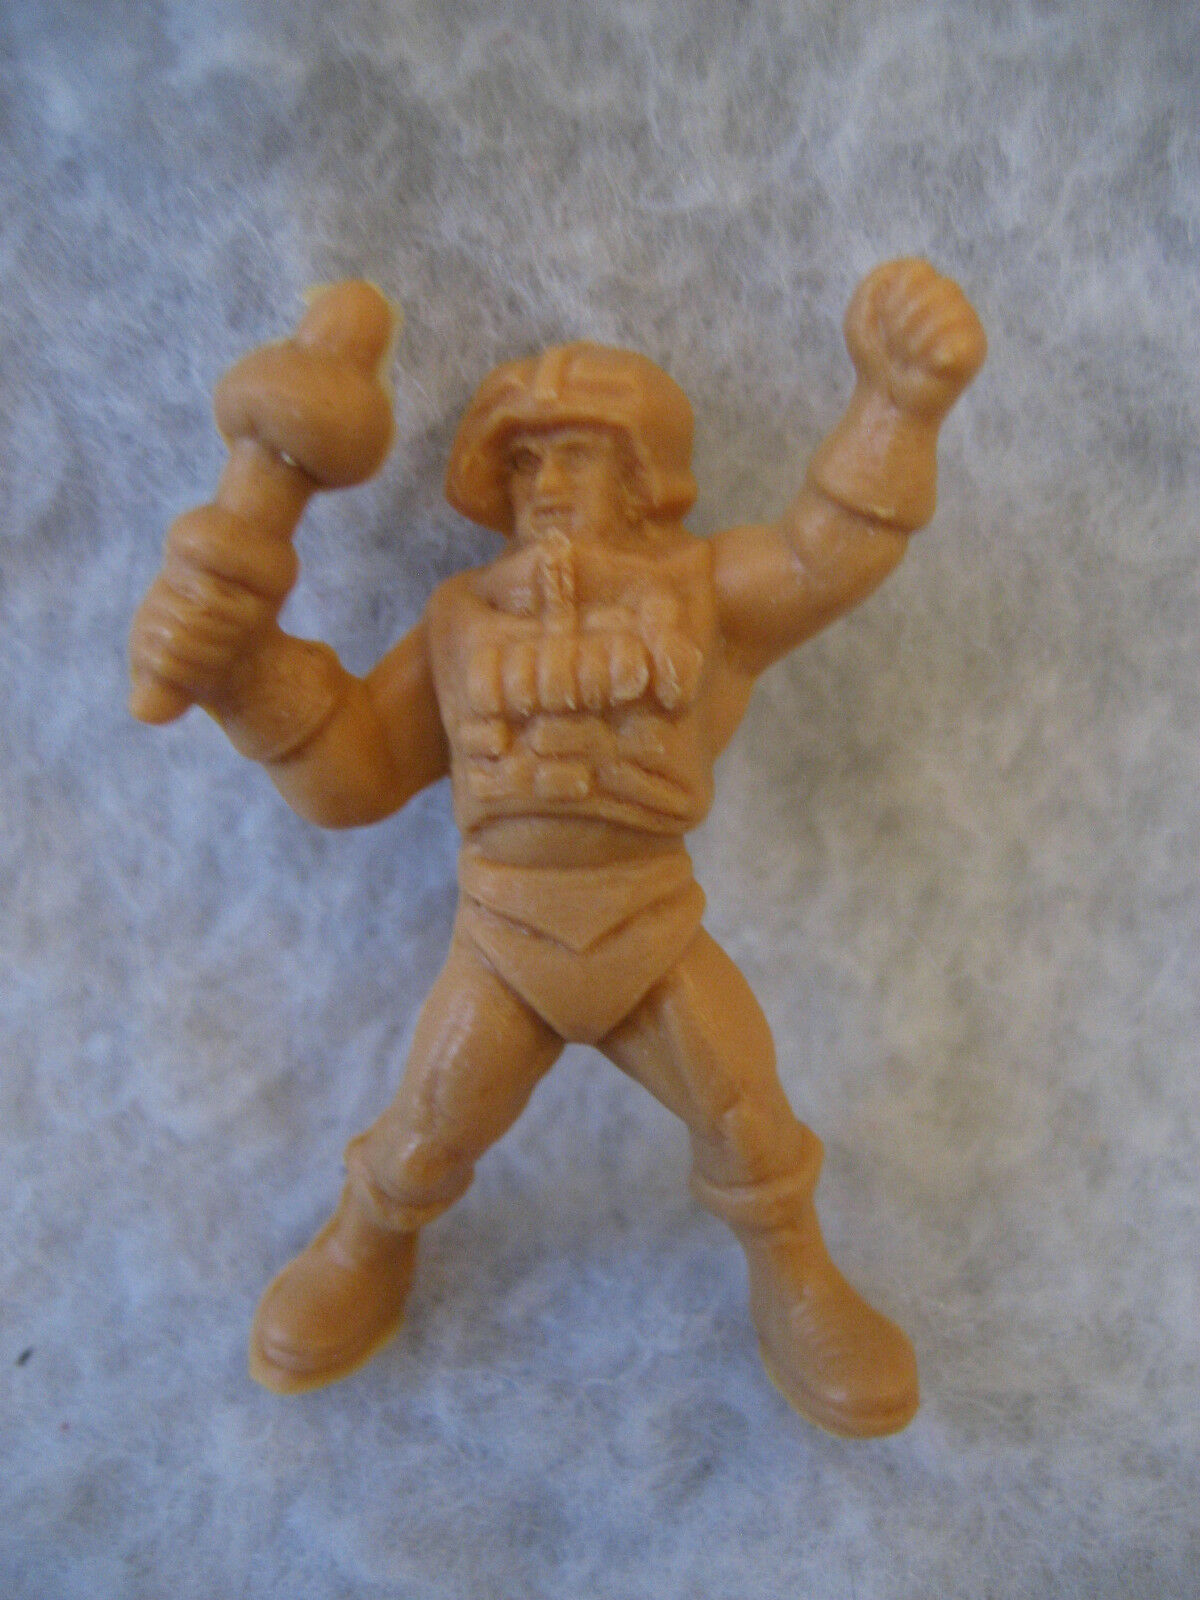 1985 vintage MAN AT ARMS Panrico Dunkin MASTERS OF OF OF THE UNIVERSE figure RARE toy 365f4f